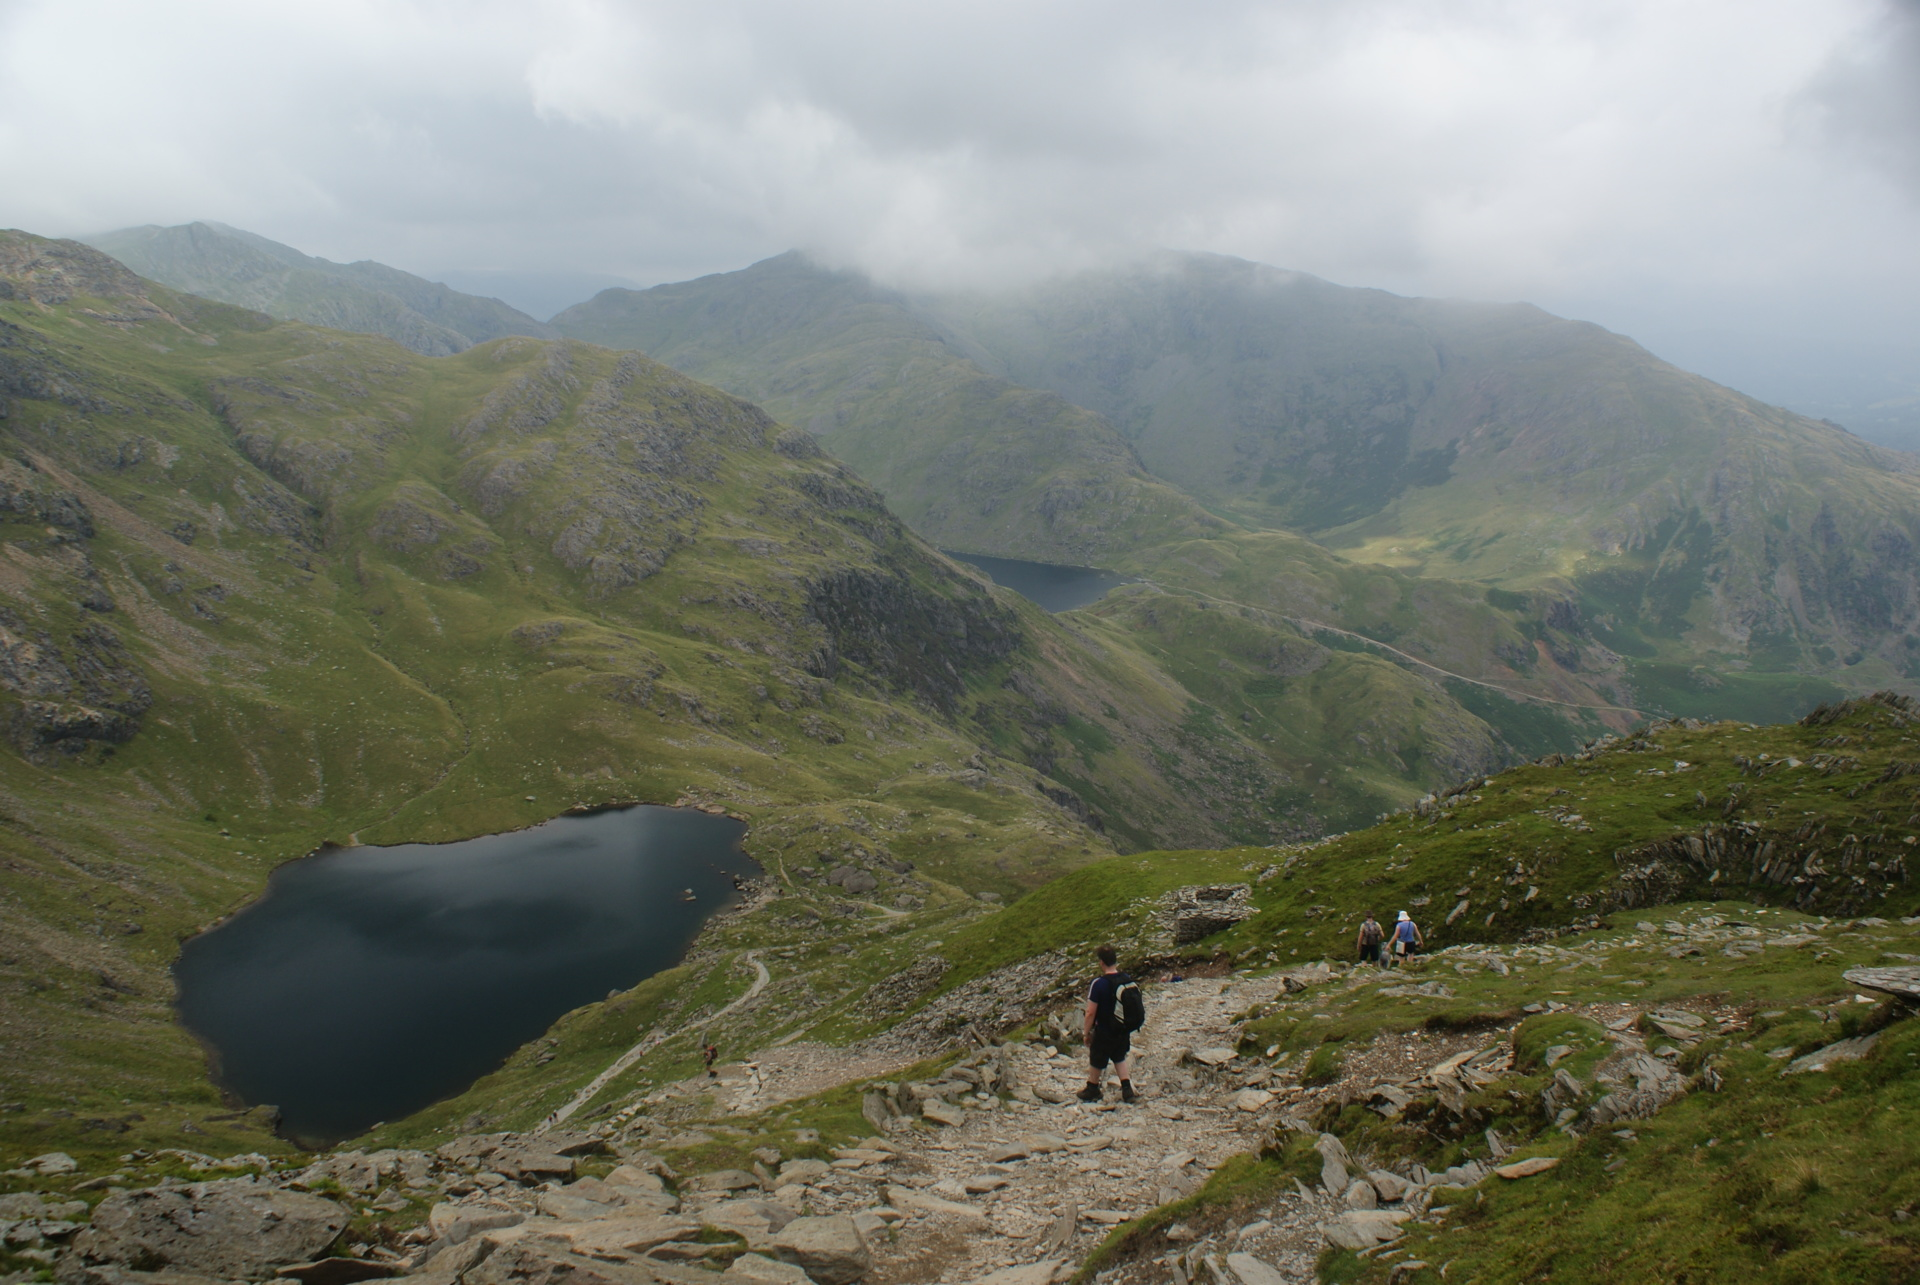 Lake District Trip tomorrow, One Mountain and Two Hikes